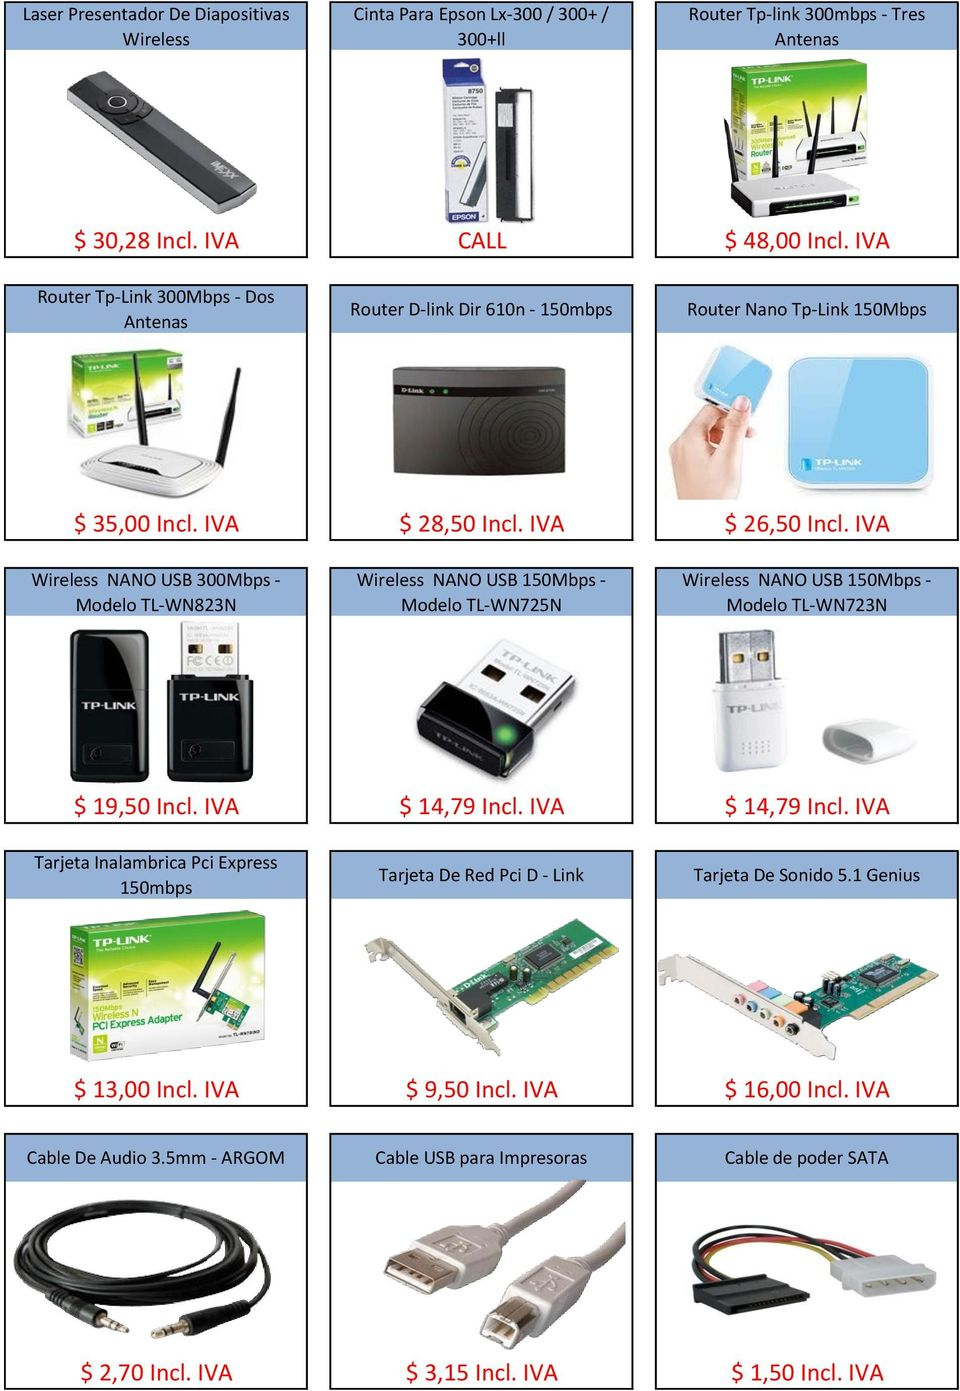 IVA Wireless NANO USB 300Mbps - Modelo TL-WN823N Wireless NANO USB 150Mbps - Modelo TL-WN725N Wireless NANO USB 150Mbps - Modelo TL-WN723N $ 19,50 Incl. IVA $ 14,79 Incl.